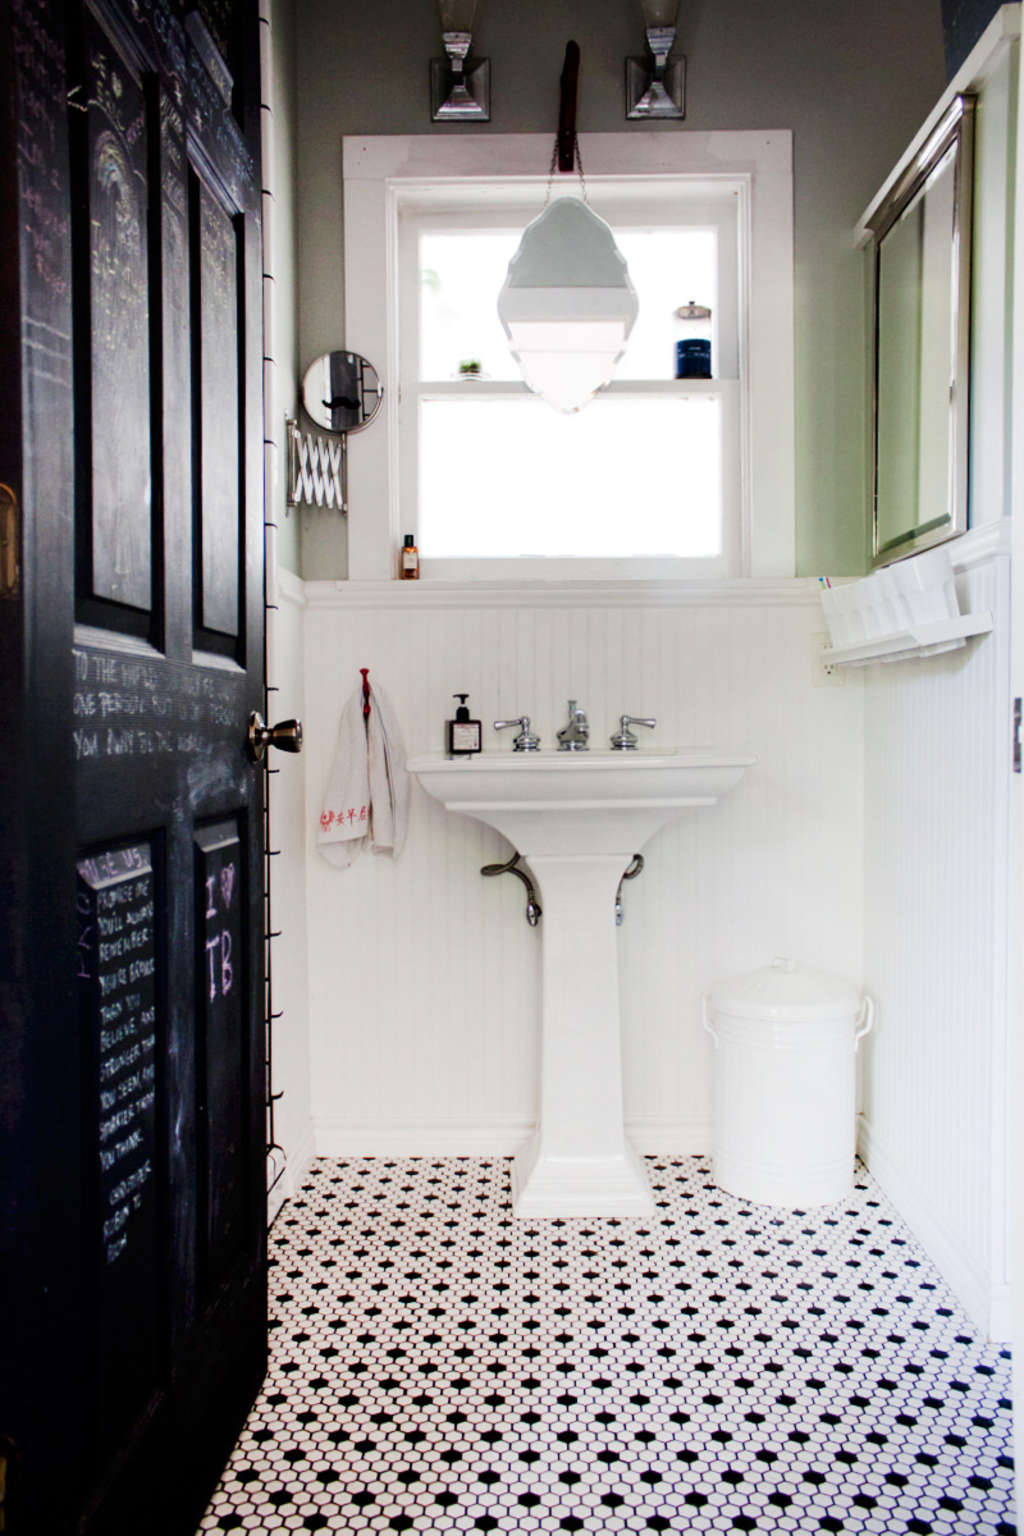 Bathroom Storage Ideas - Storage For Small Bathrooms | Apartment Therapy